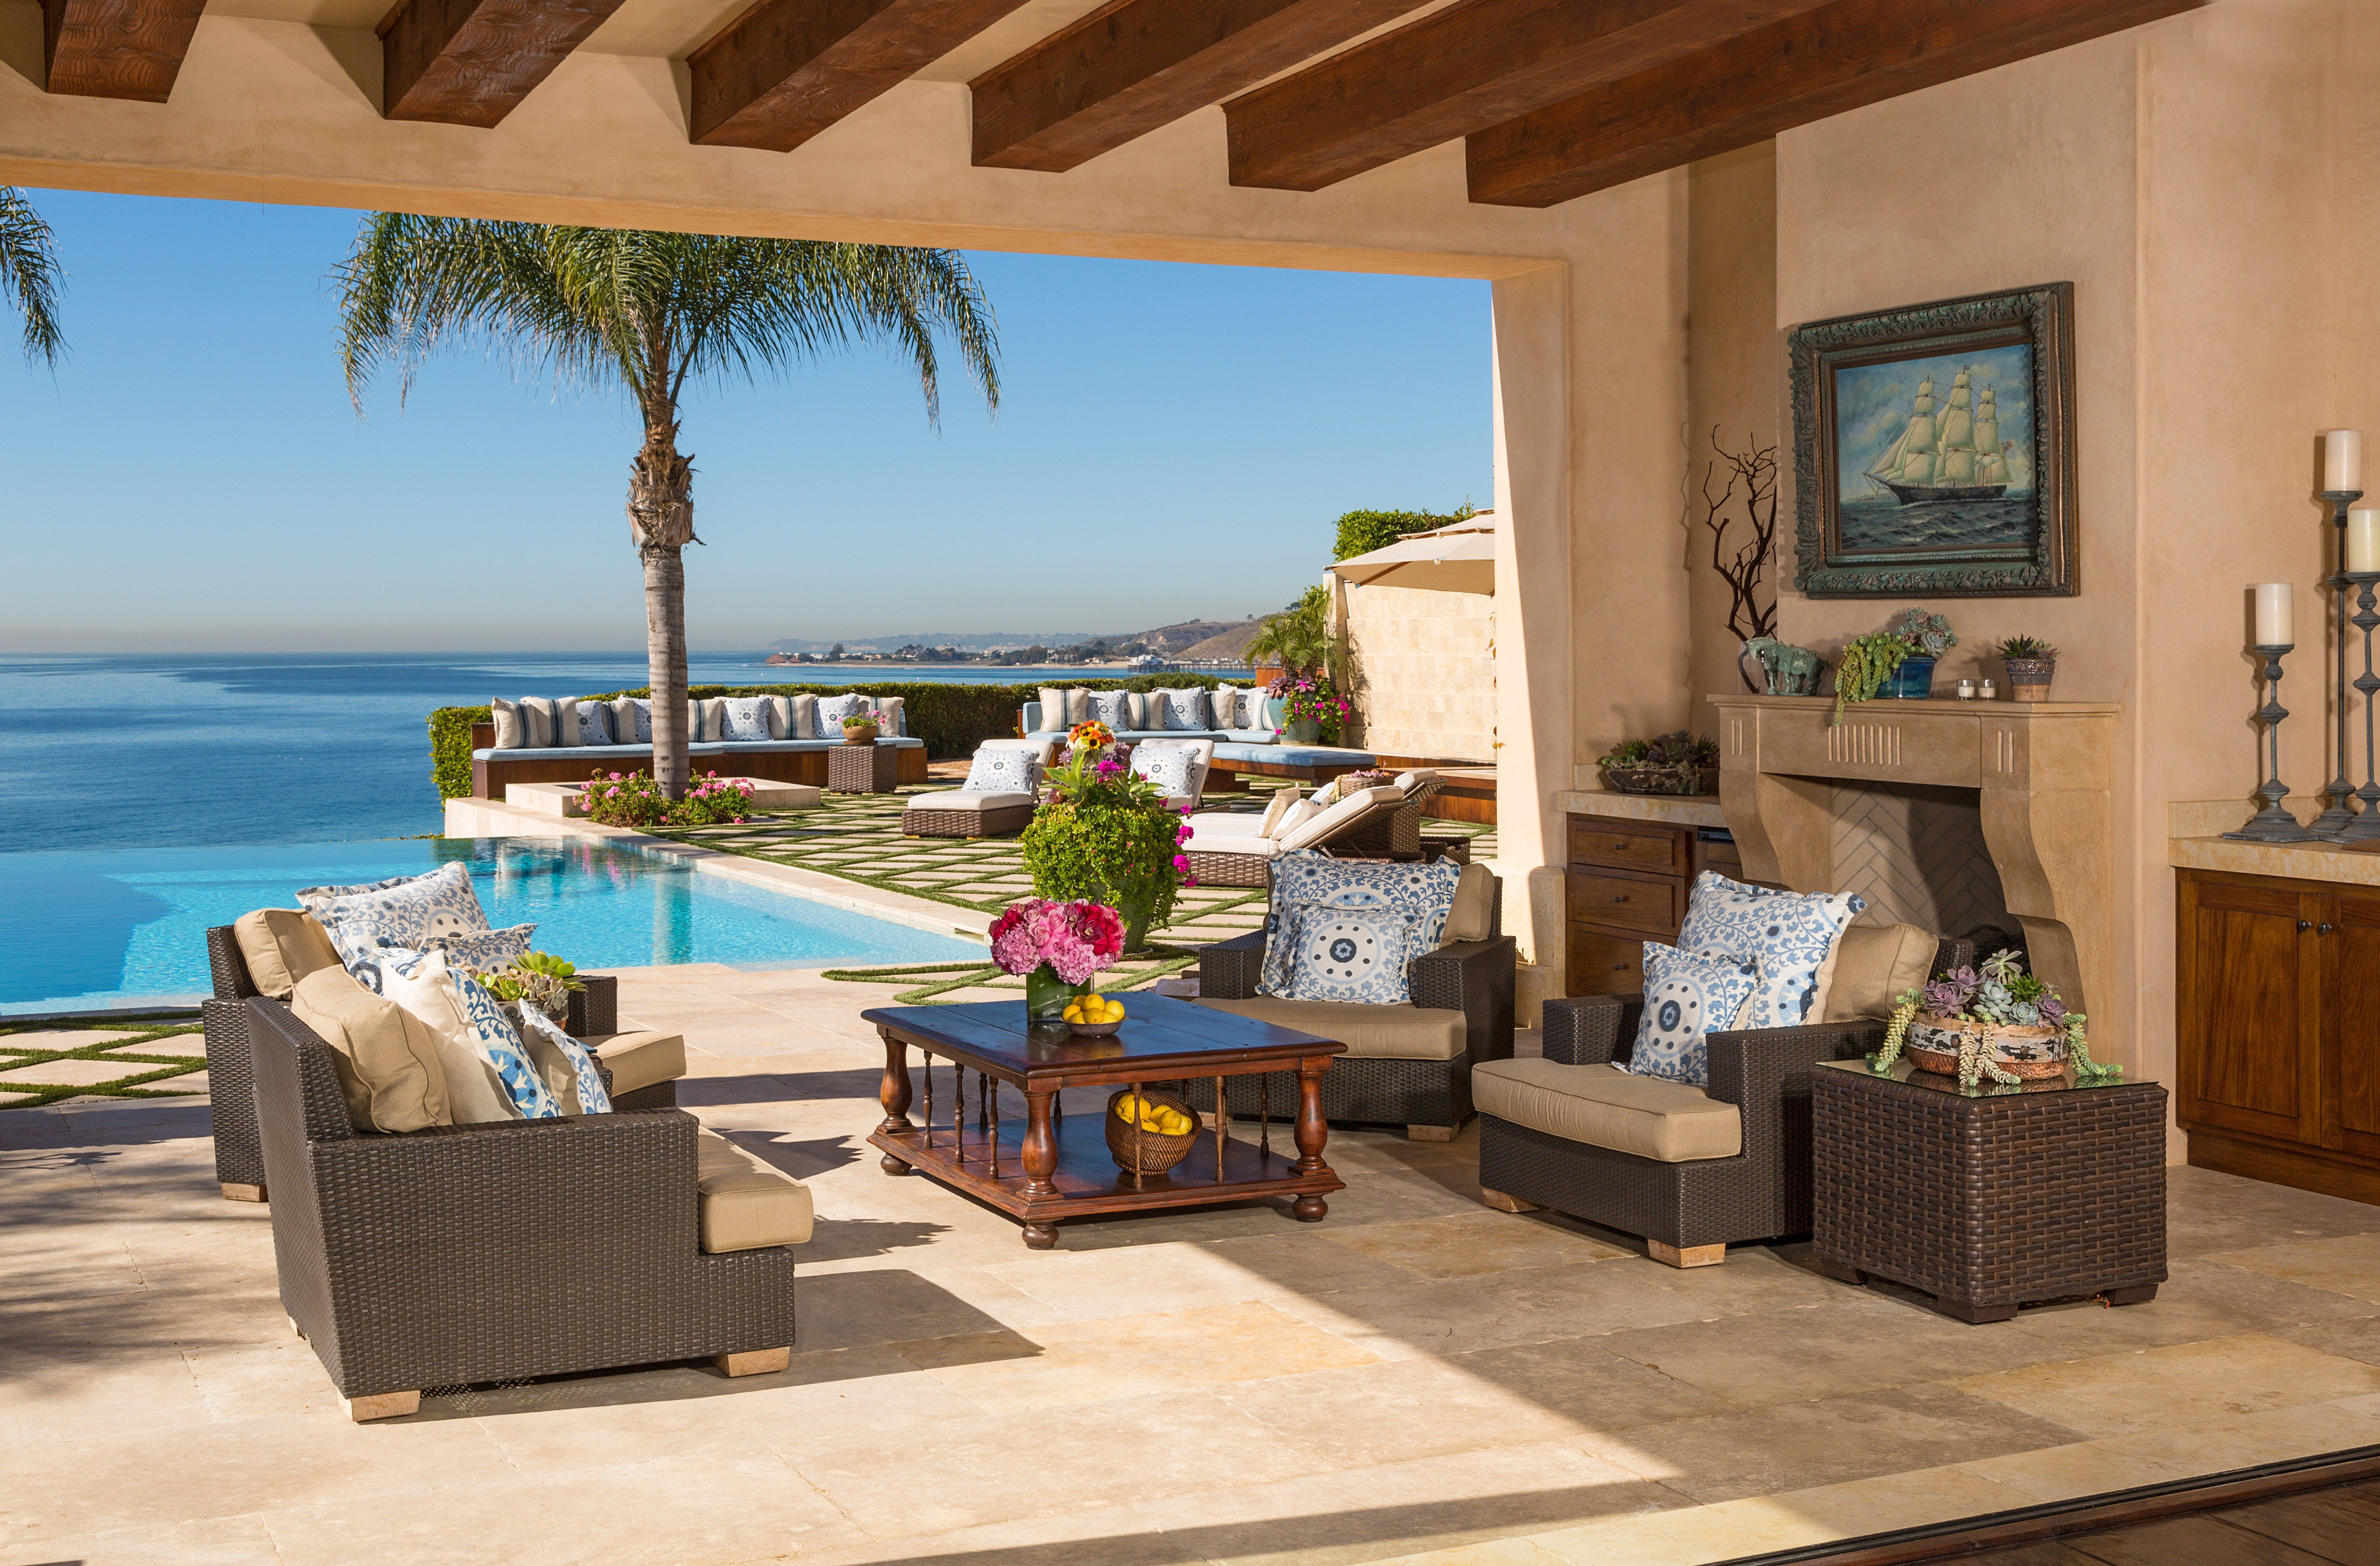 Malibu Home Of The Real Housewives Of Beverly Hills Yolanda And David Foster Sells For 19 Million Malibu Homes Malibu Mansion Yolanda Foster Home